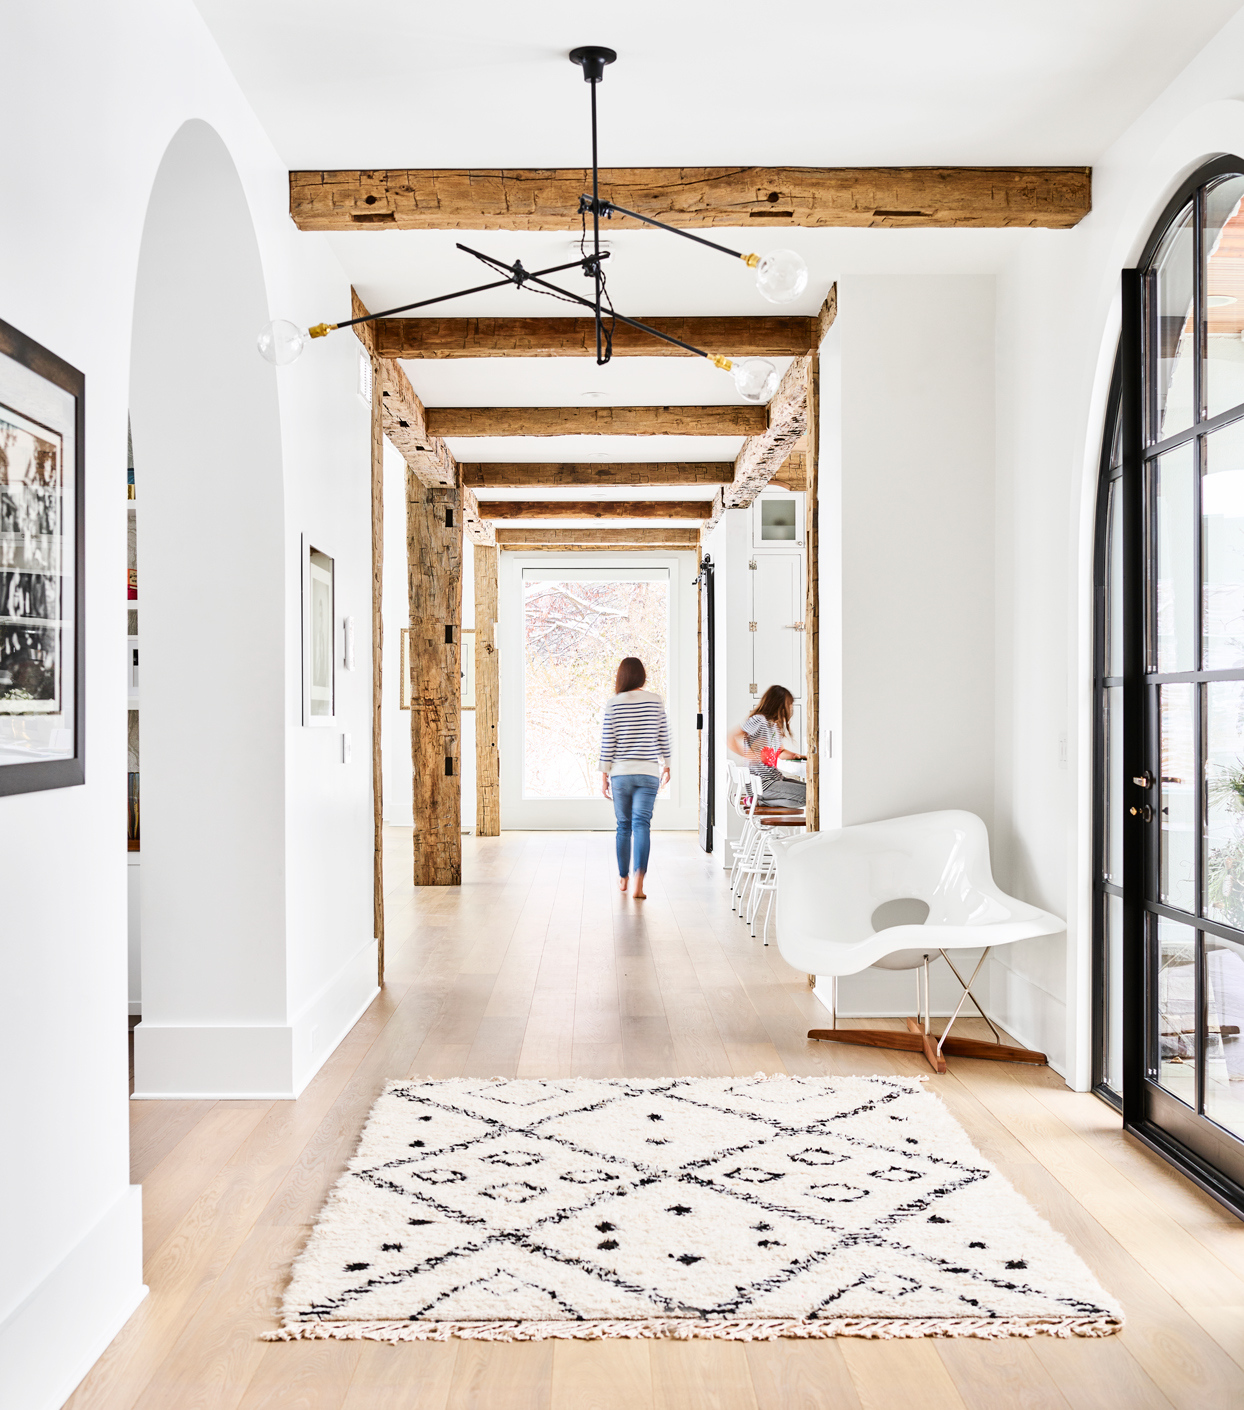 hub to kitchen and other spaces